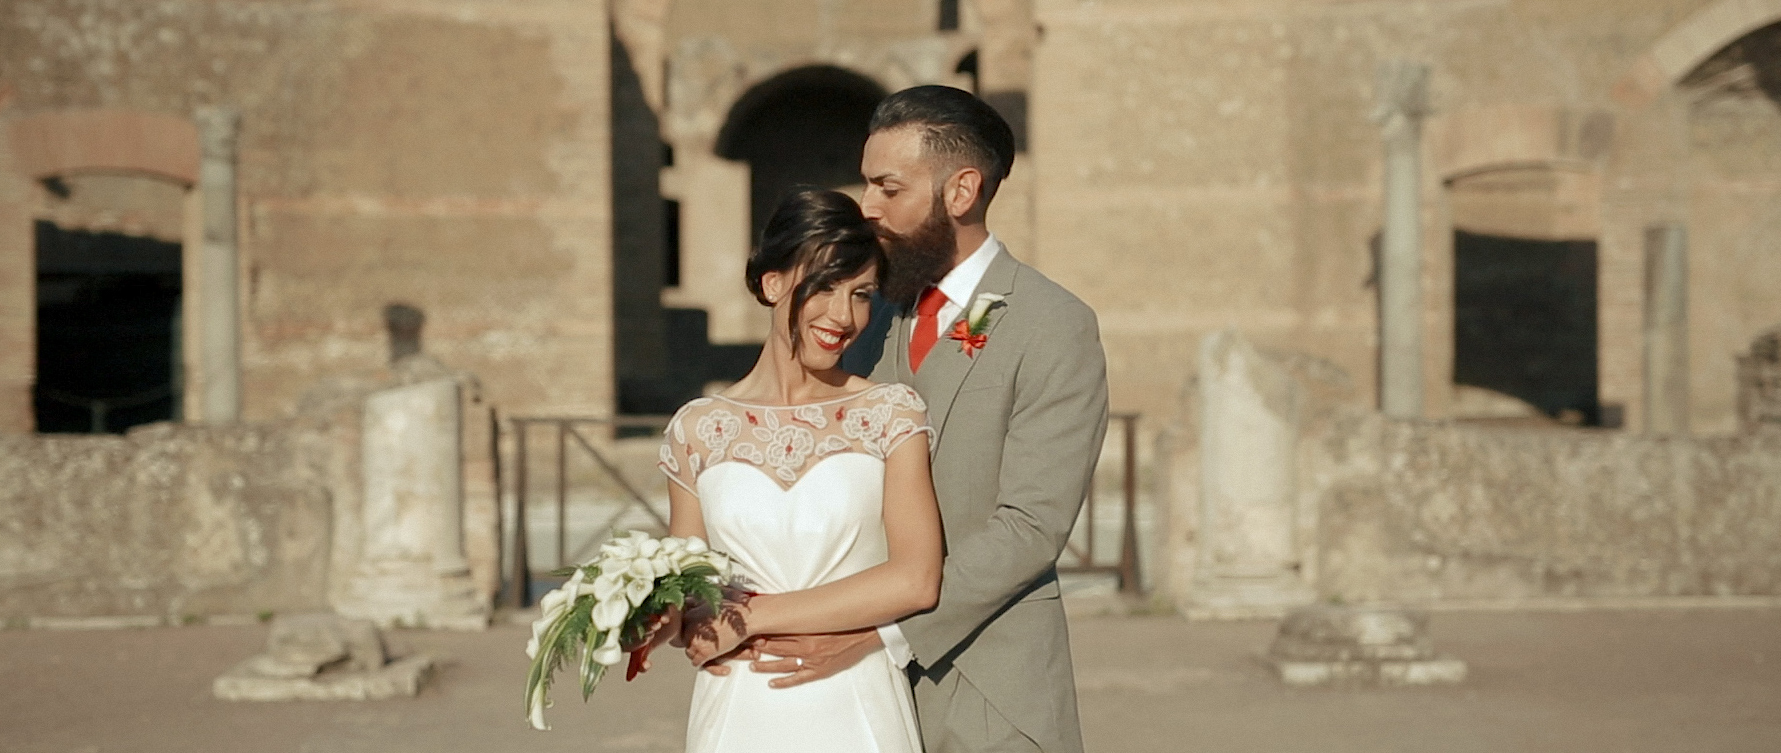 Intimate wedding video in rome 9